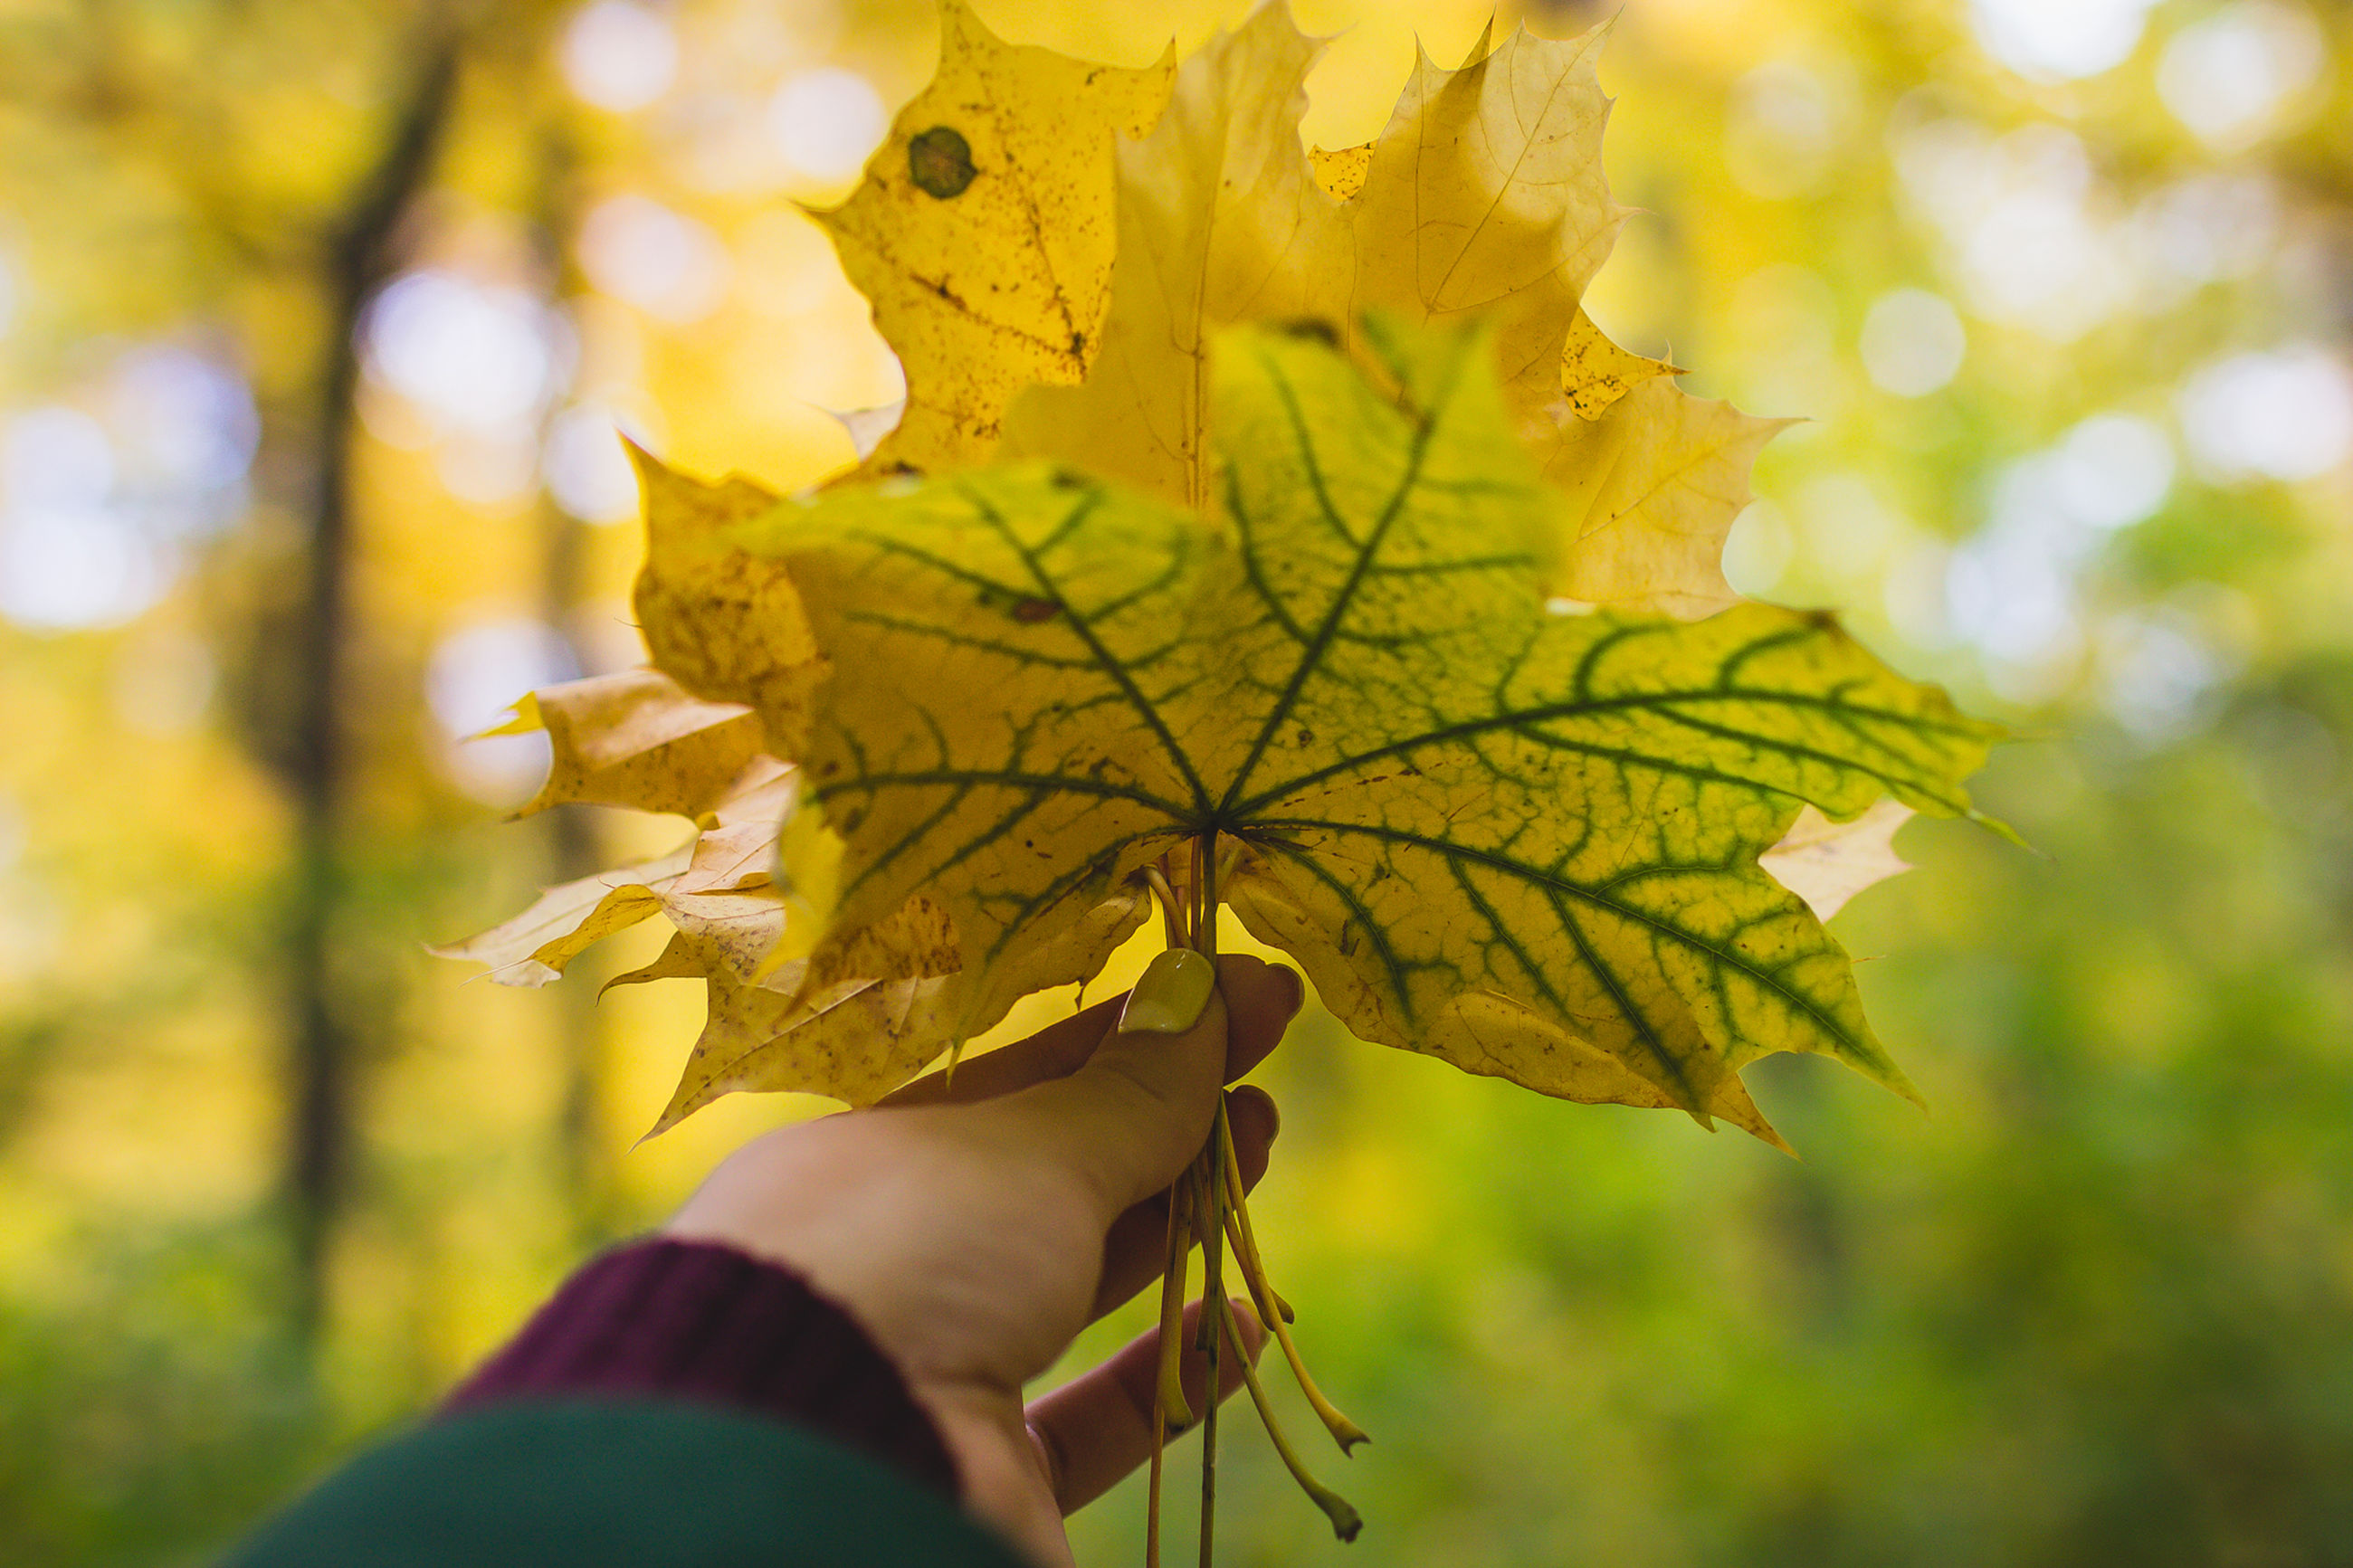 person, leaf, focus on foreground, holding, part of, autumn, cropped, close-up, unrecognizable person, tree, change, personal perspective, leaf vein, human finger, lifestyles, yellow, nature